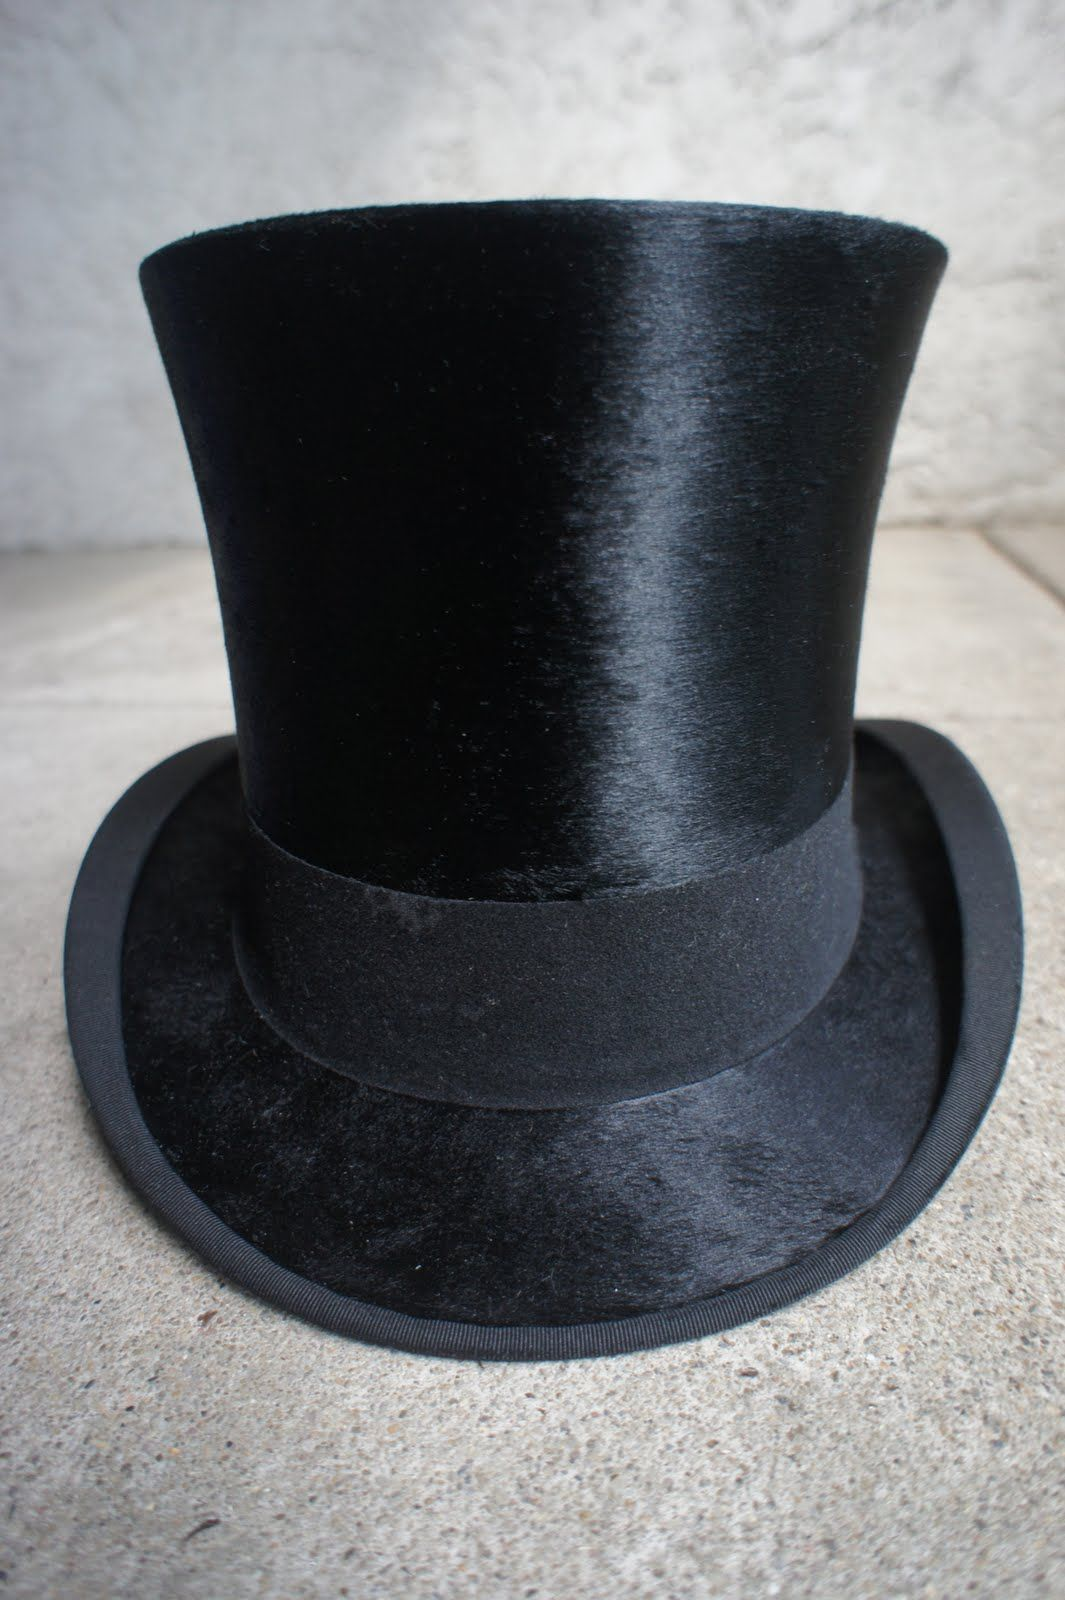 d7535065811 The taller and shinier a top hat